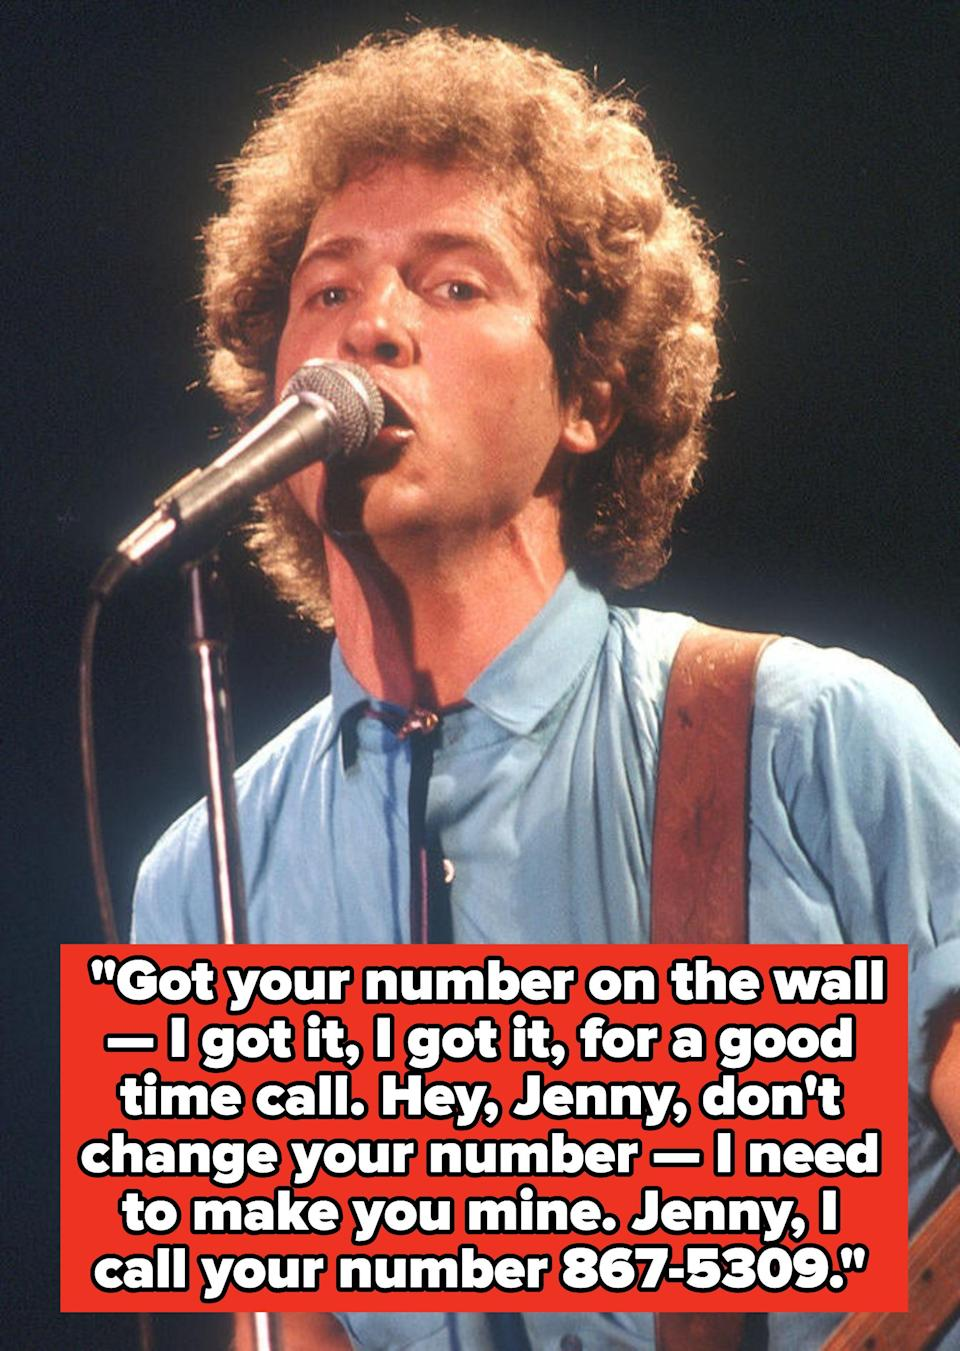 """Tommy Tutone lyrics: """"Got your number on the wall — I got it, I got it, for a good time call. Hey, Jenny, don't change your number — I need to make you mine. Jenny, I call your number 867-5309"""""""